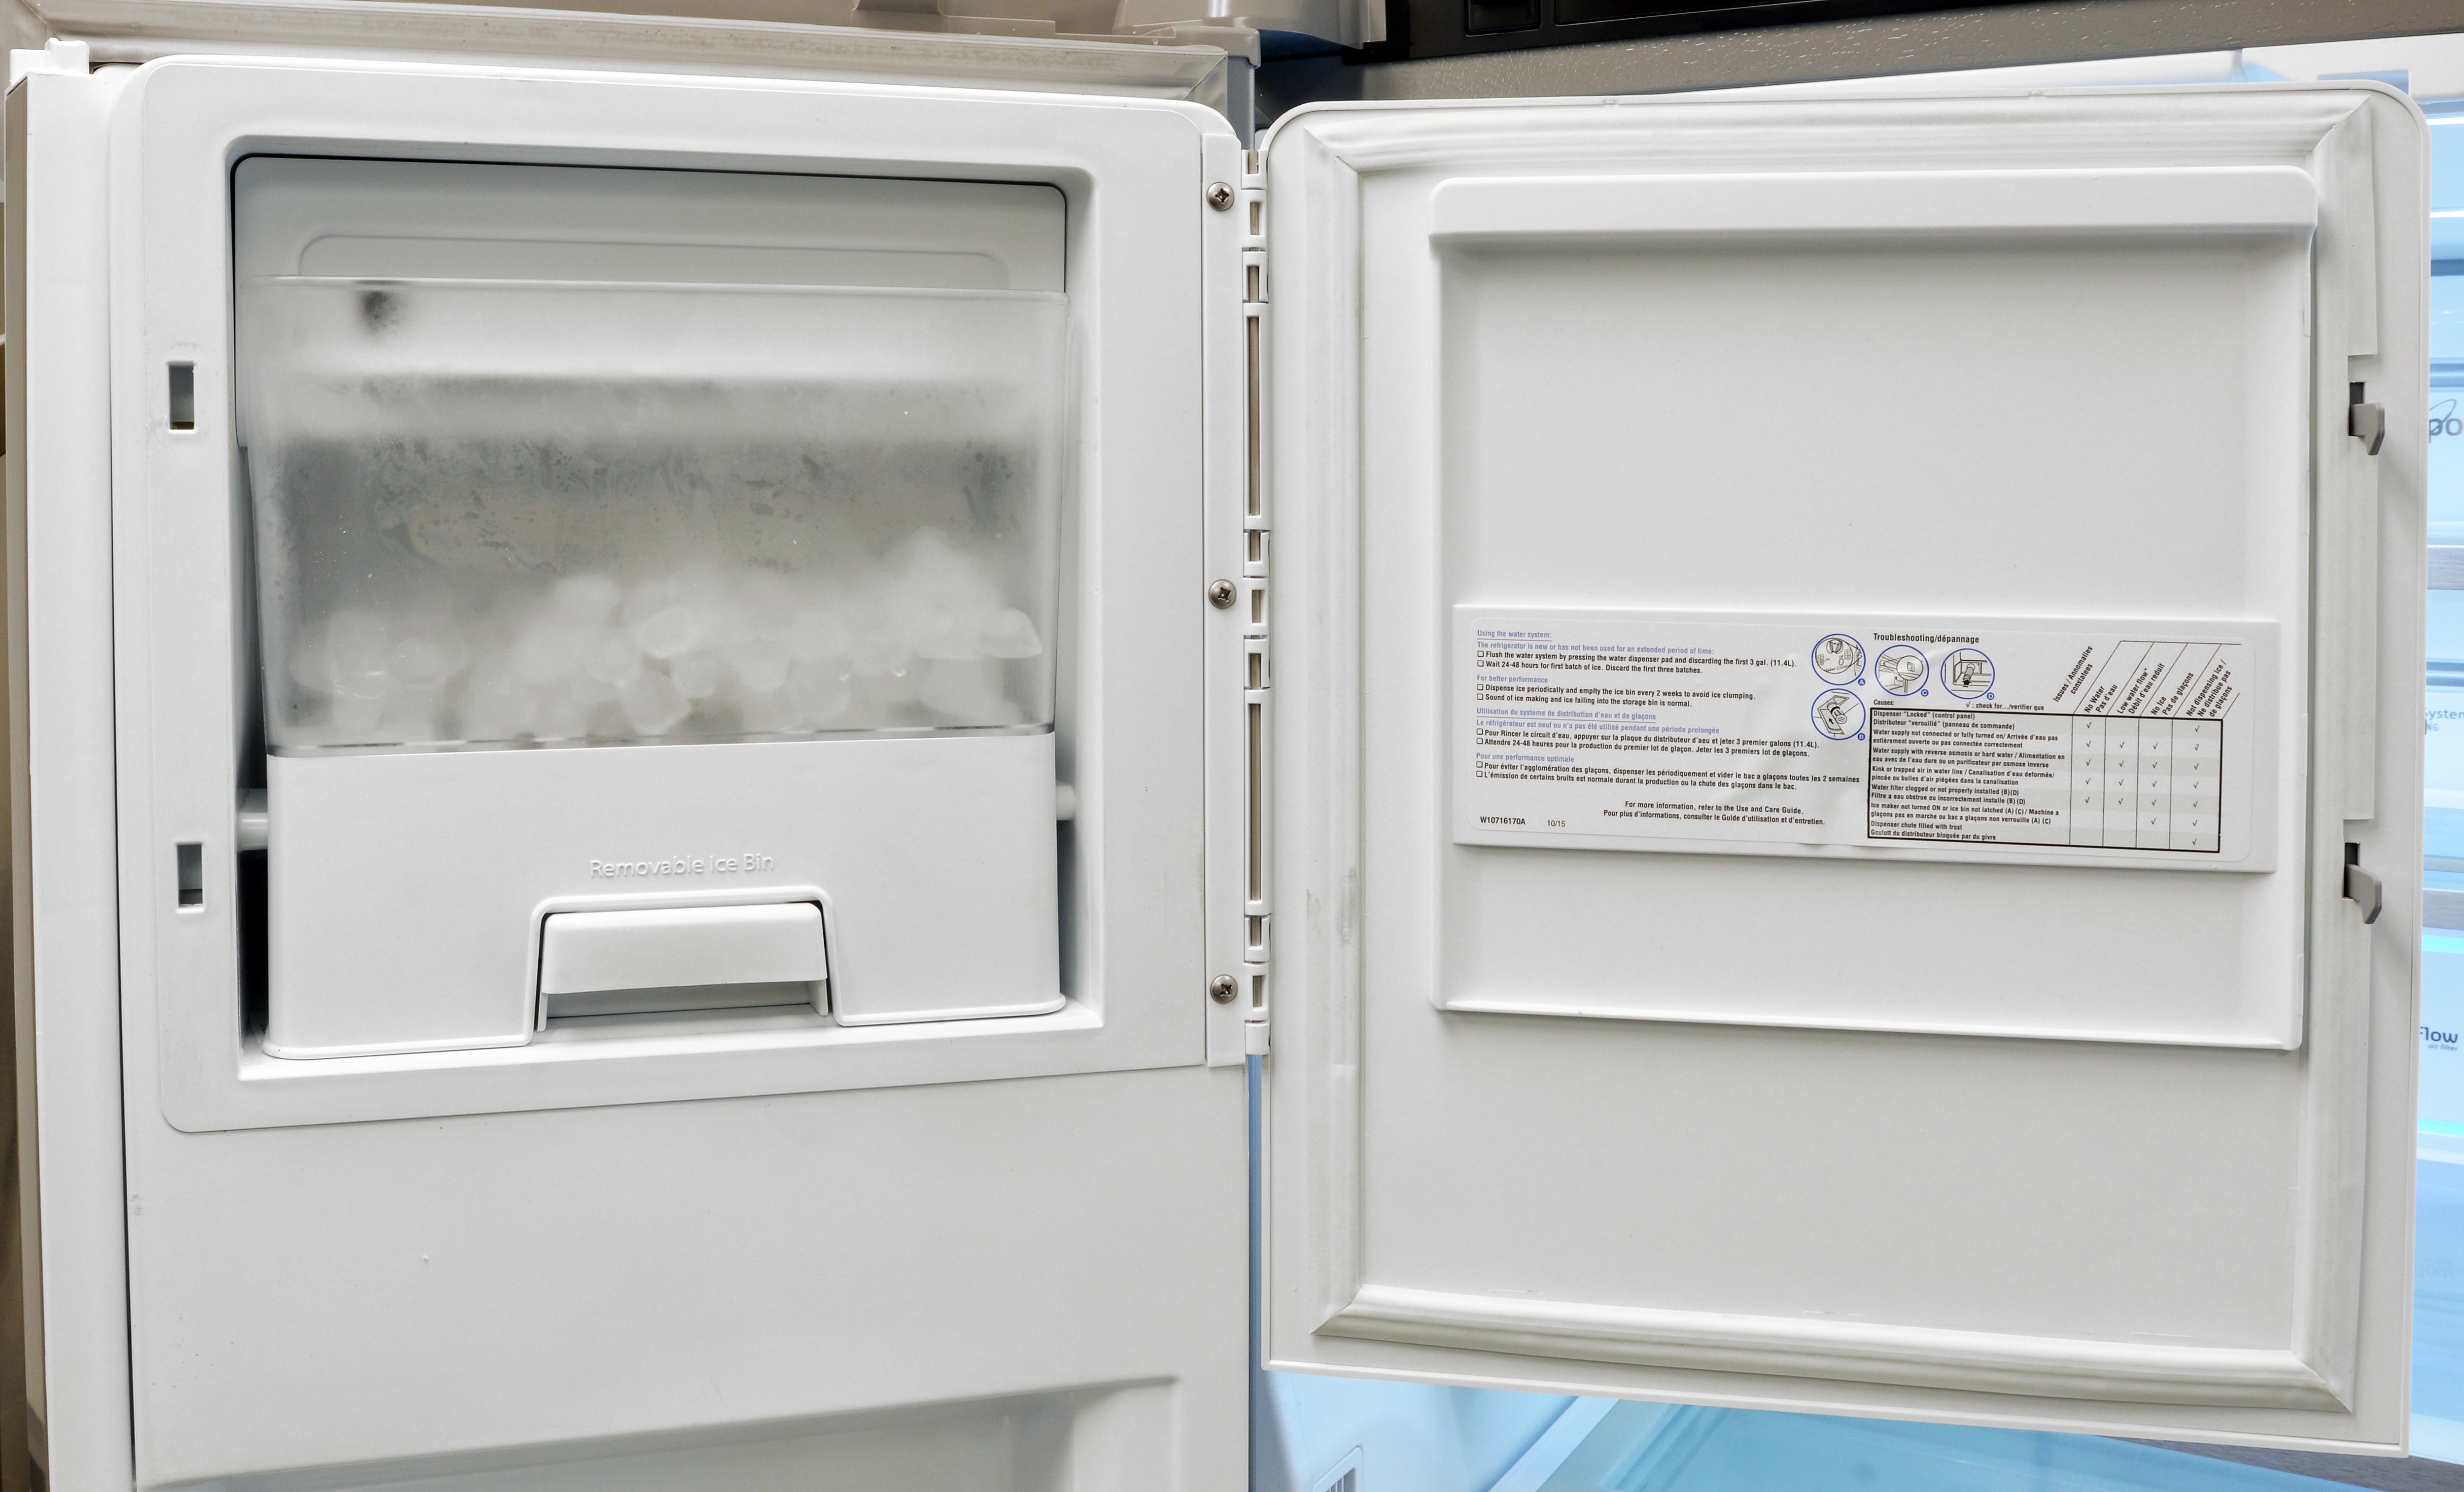 The ice maker that fuels the dispenser is easy to remove should you need some additional bulk ice.